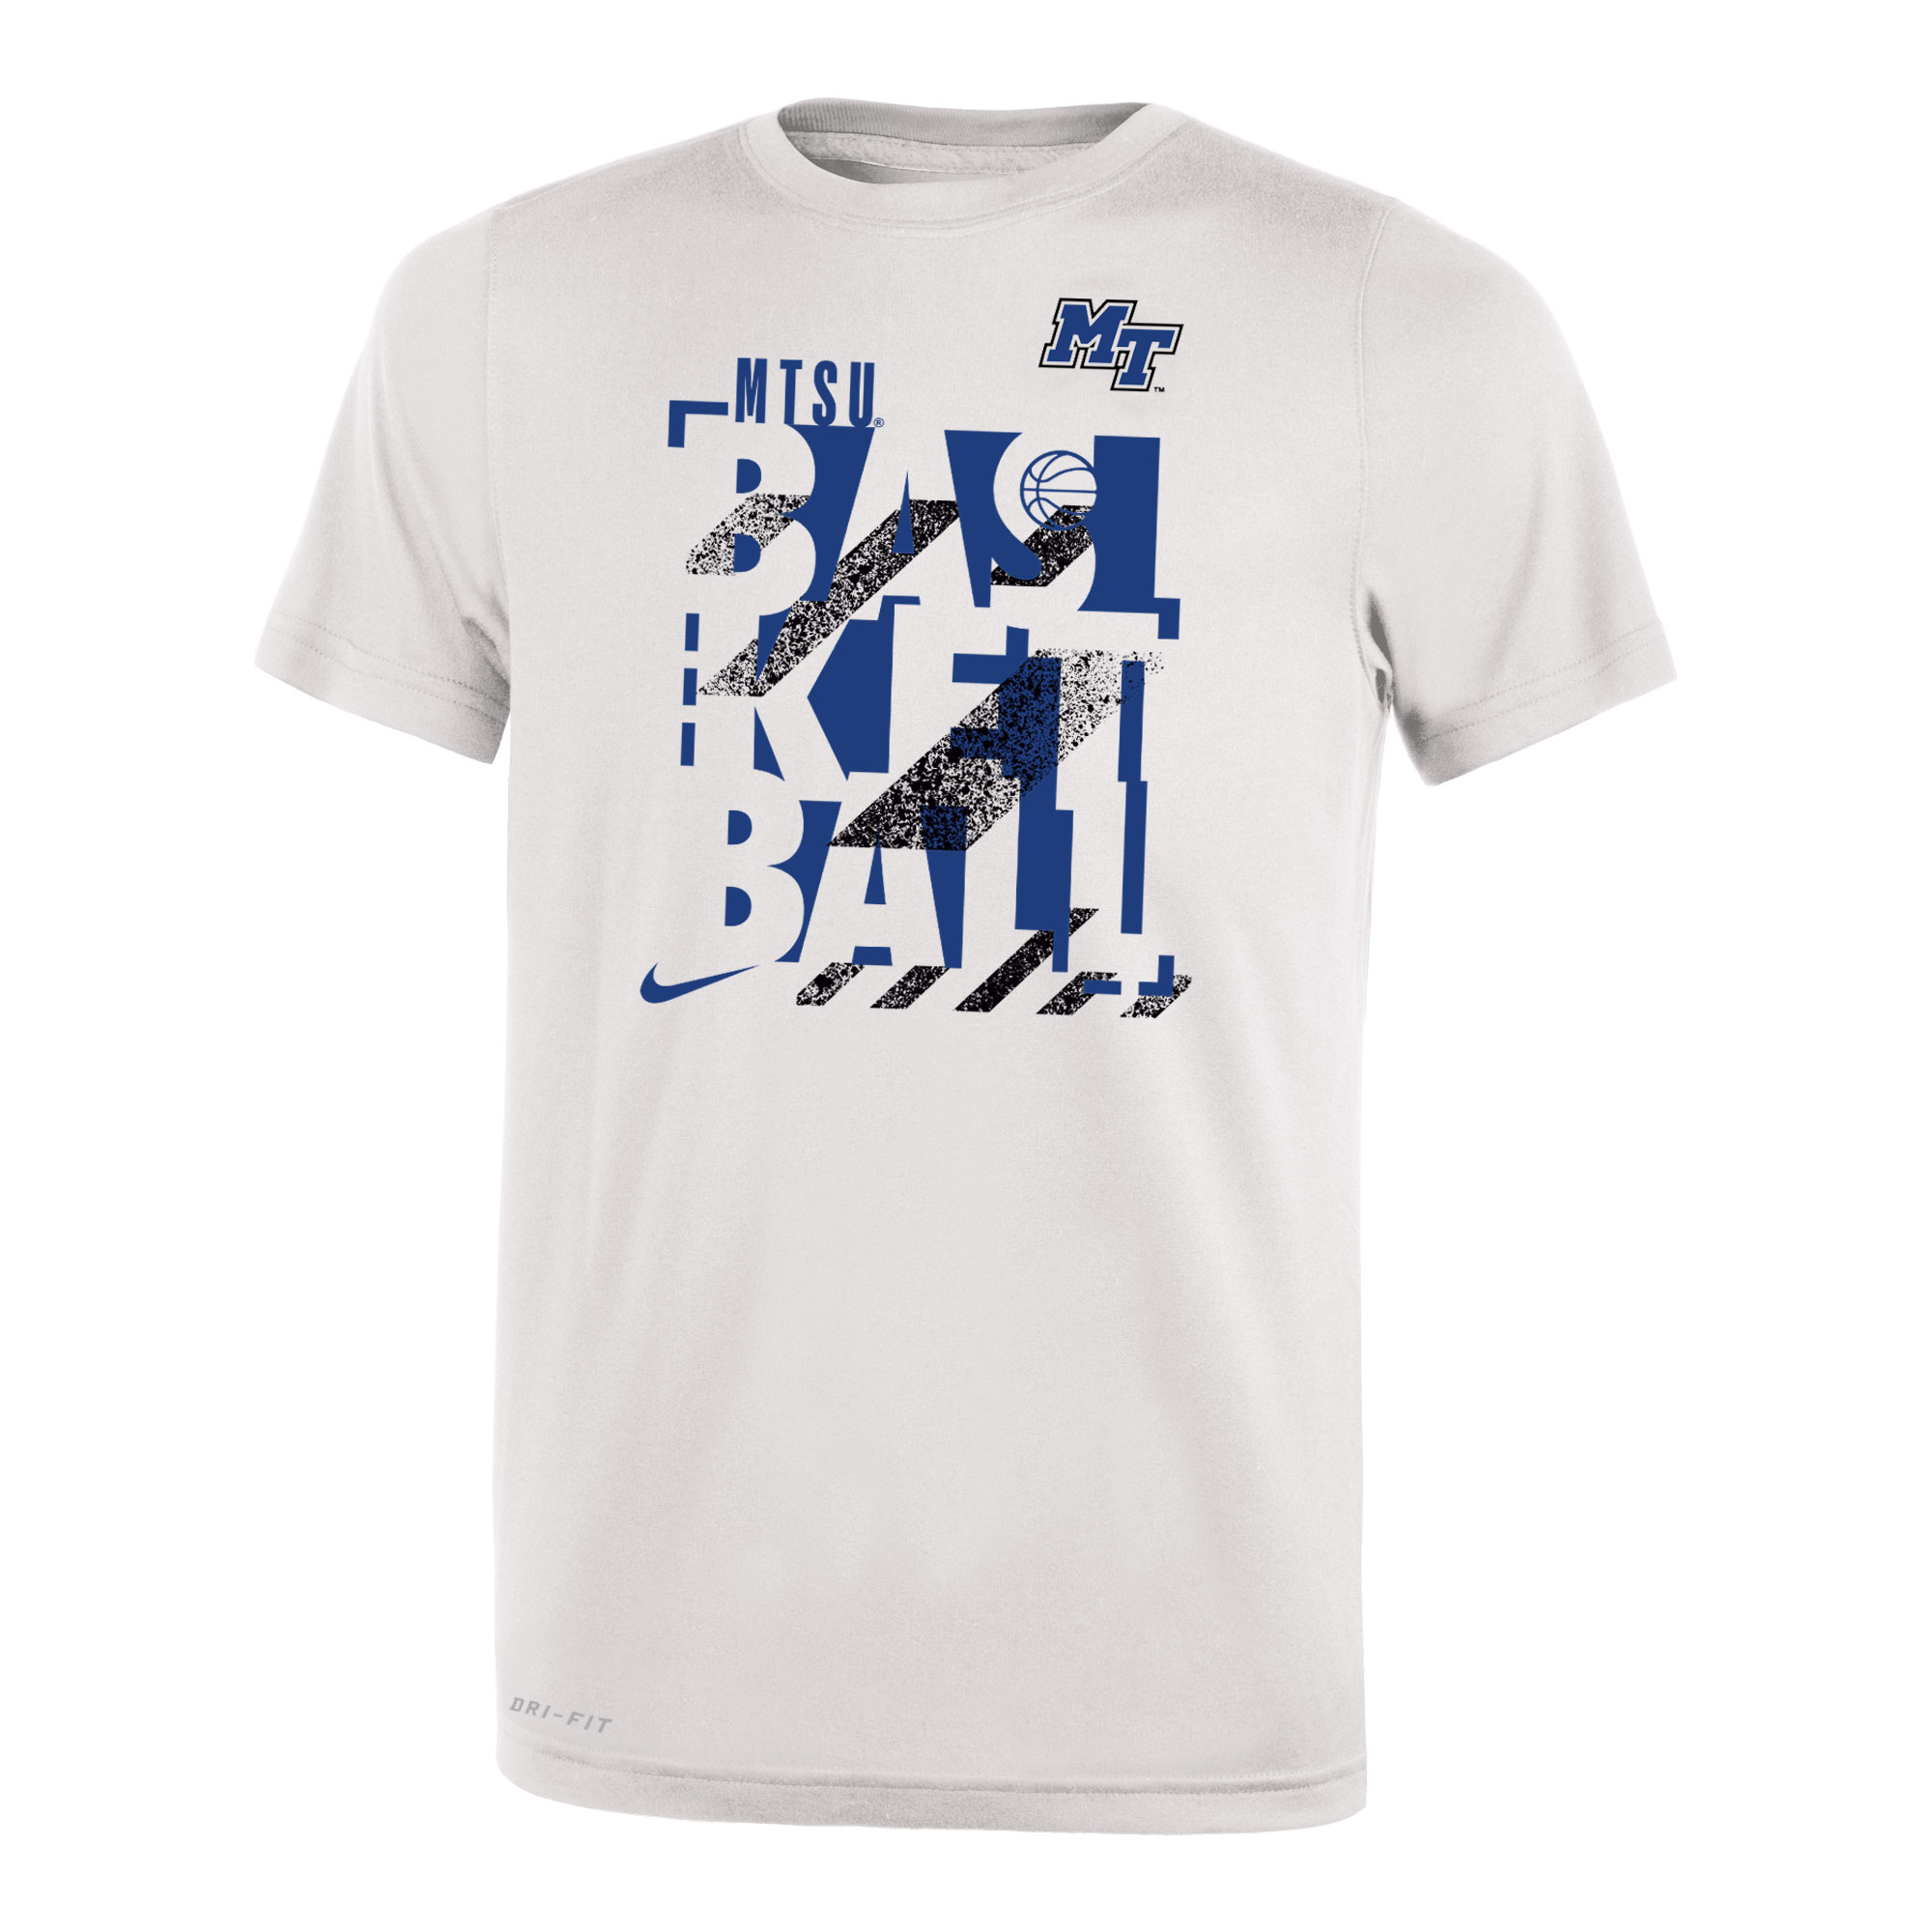 MTSU Basketball w/ MT Logo Youth Nike® Dri-Fit Legend 2.0 Tshirt